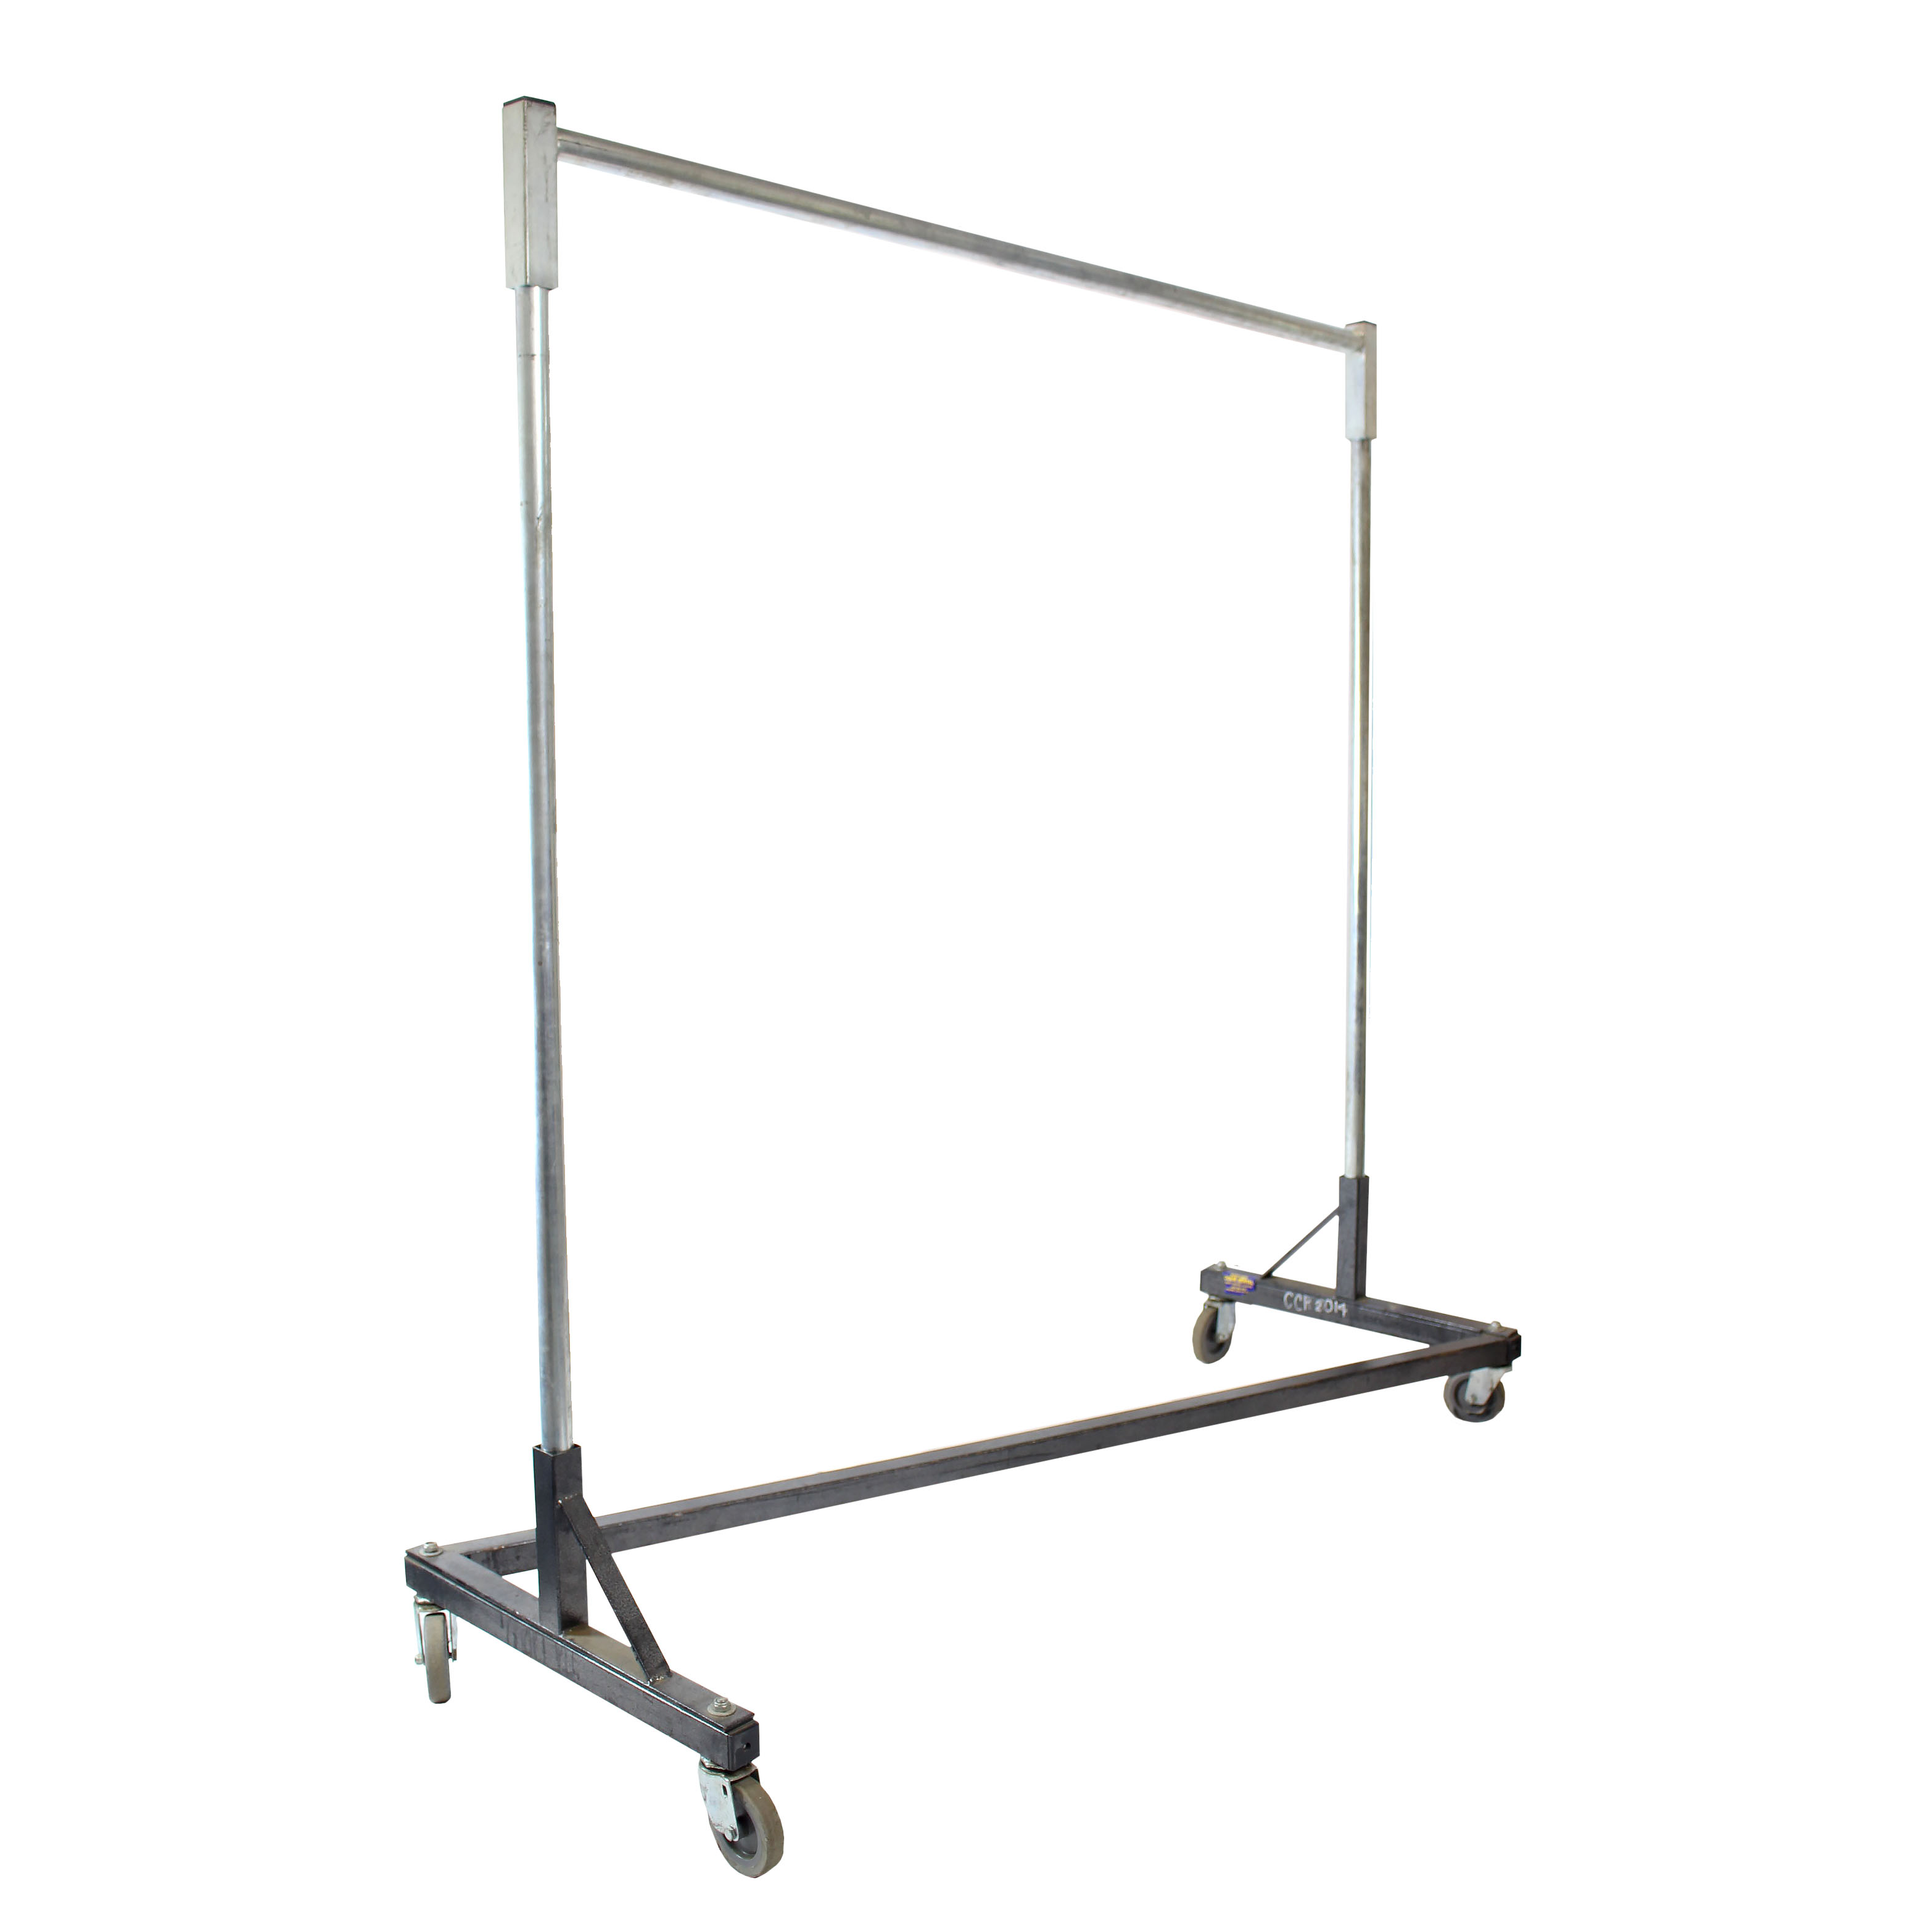 Z Coat Rack Grey Standard on Wheels with Hangers